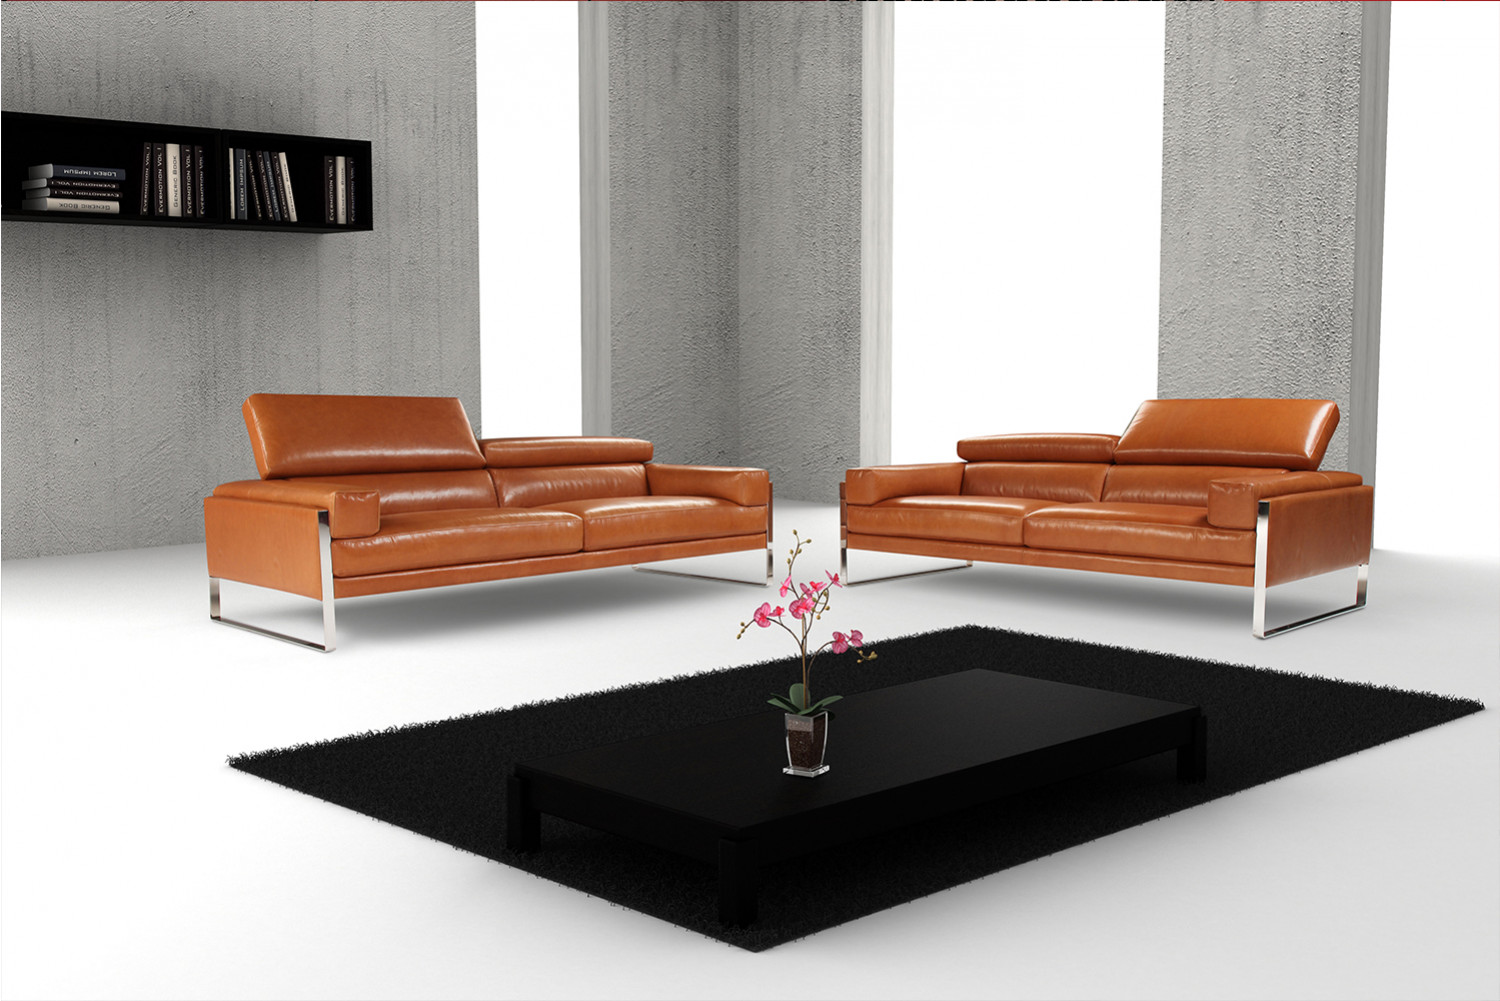 Italian Furniture Toronto Provence Modular Sofa Modern Furniture Luxury Couches